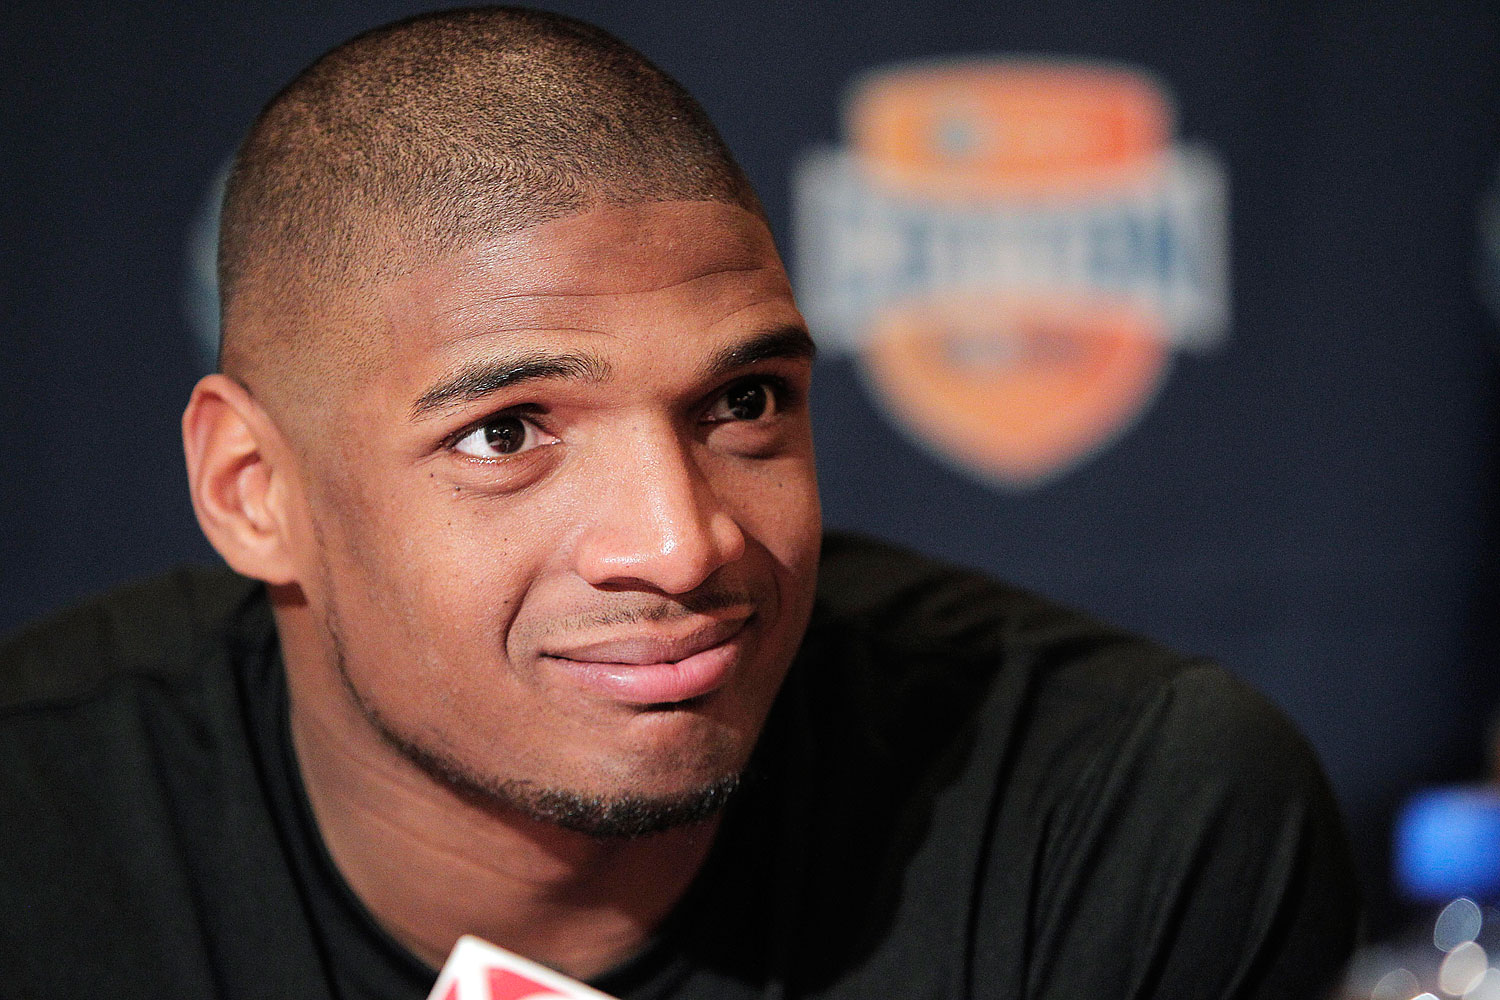 Missouri senior defensive lineman Michael Sam speaks to the media during an NCAA college football news conference, Wednesday, Jan. 1, 2014, in Irving, Texas.